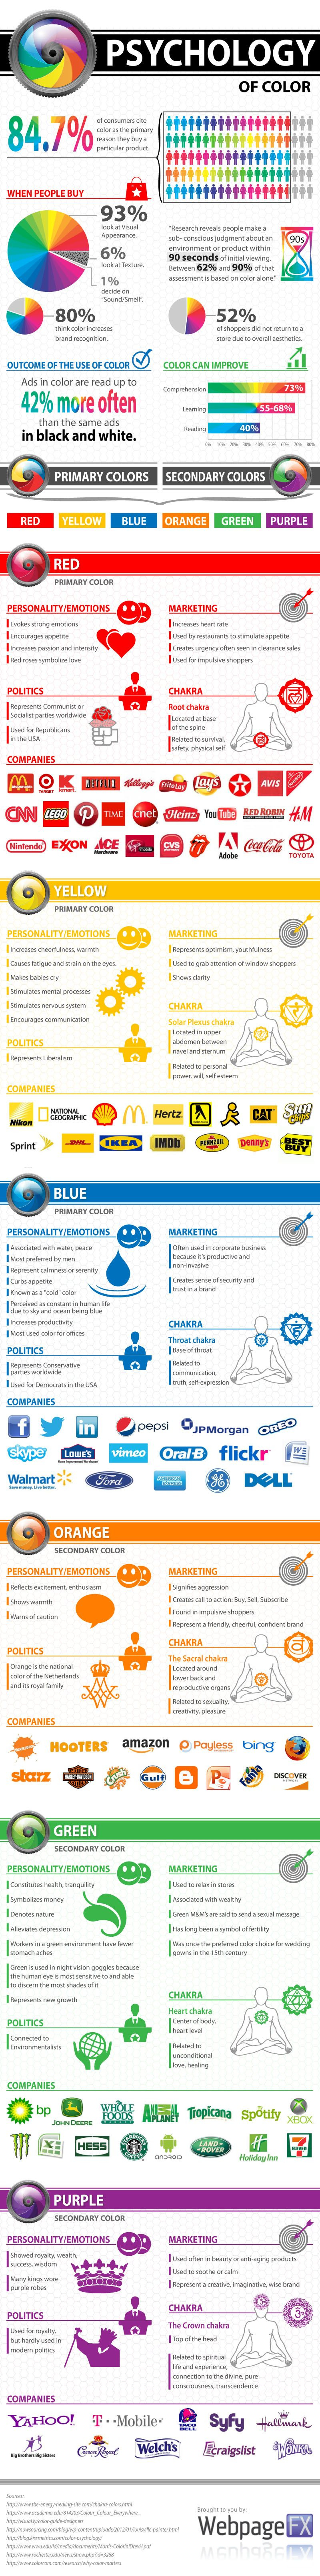 Psychology of Color - Infographic